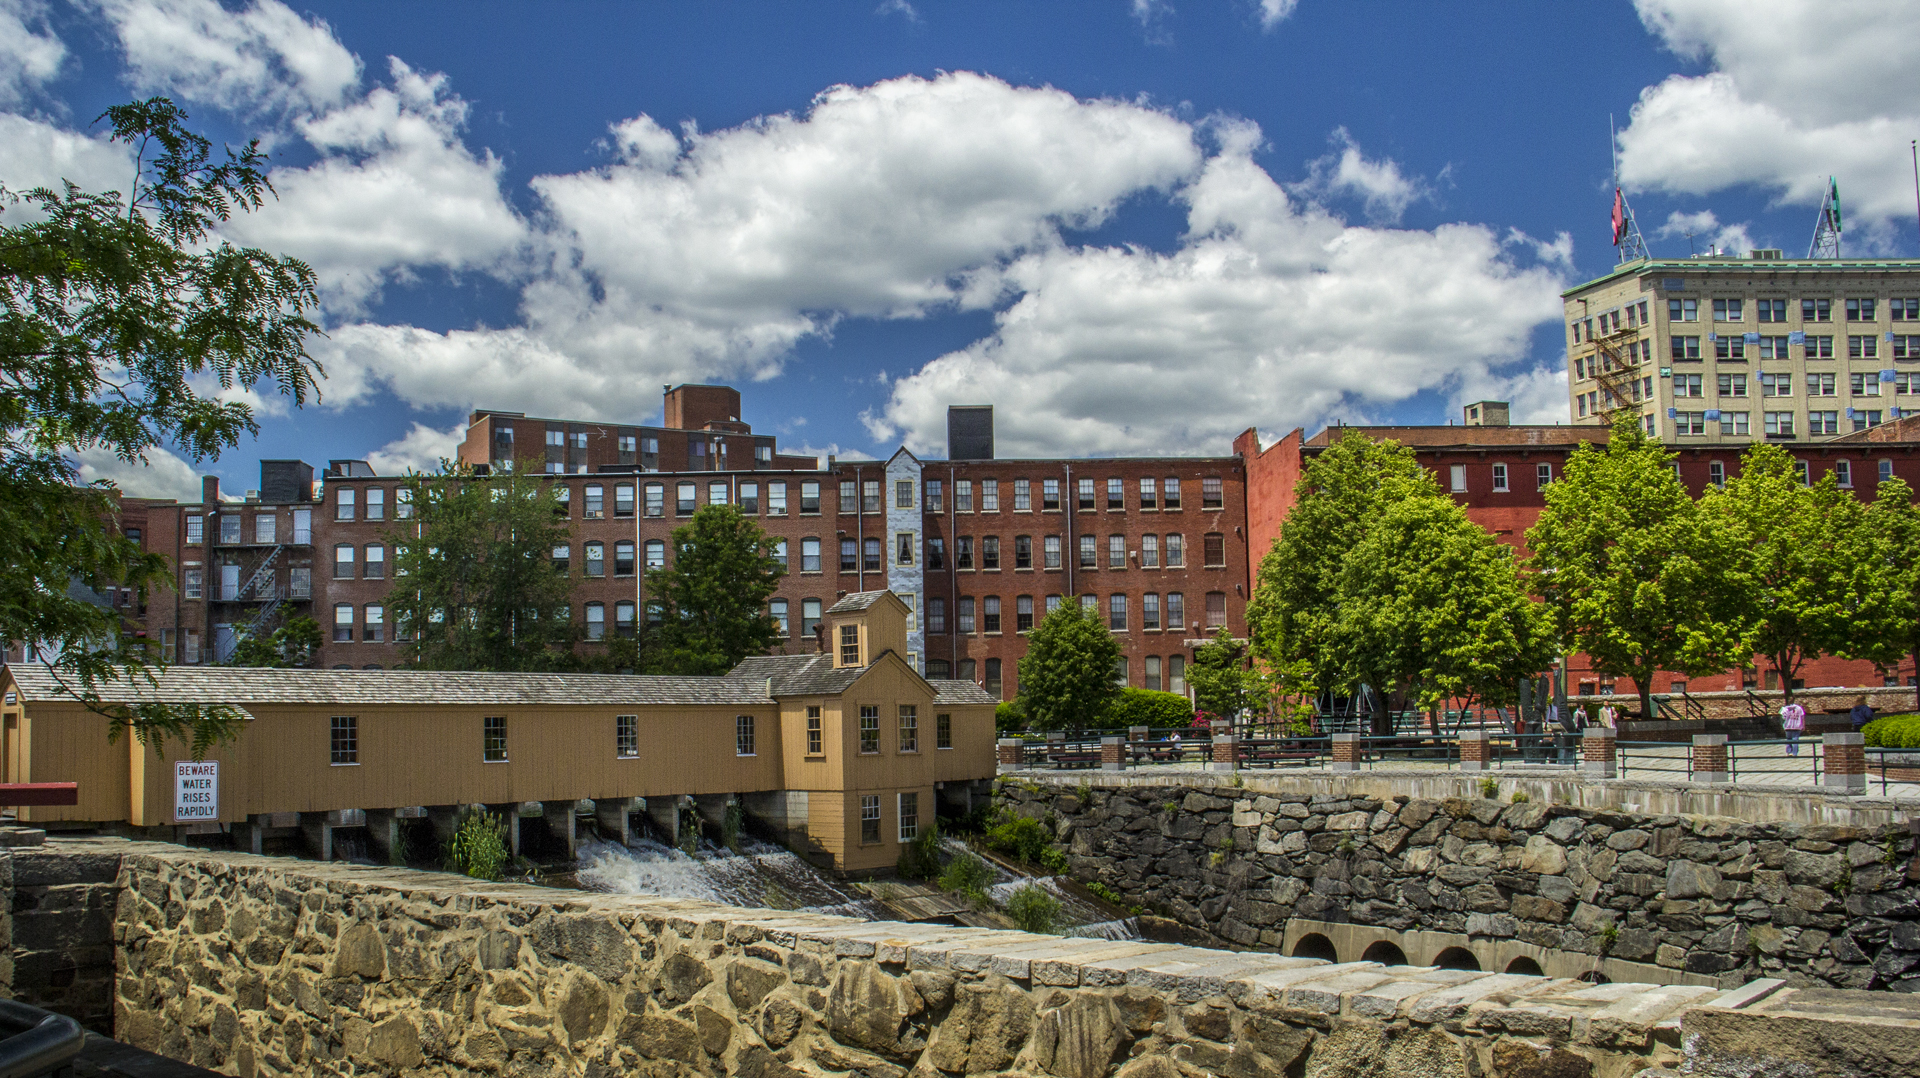 LowellMillCity_033